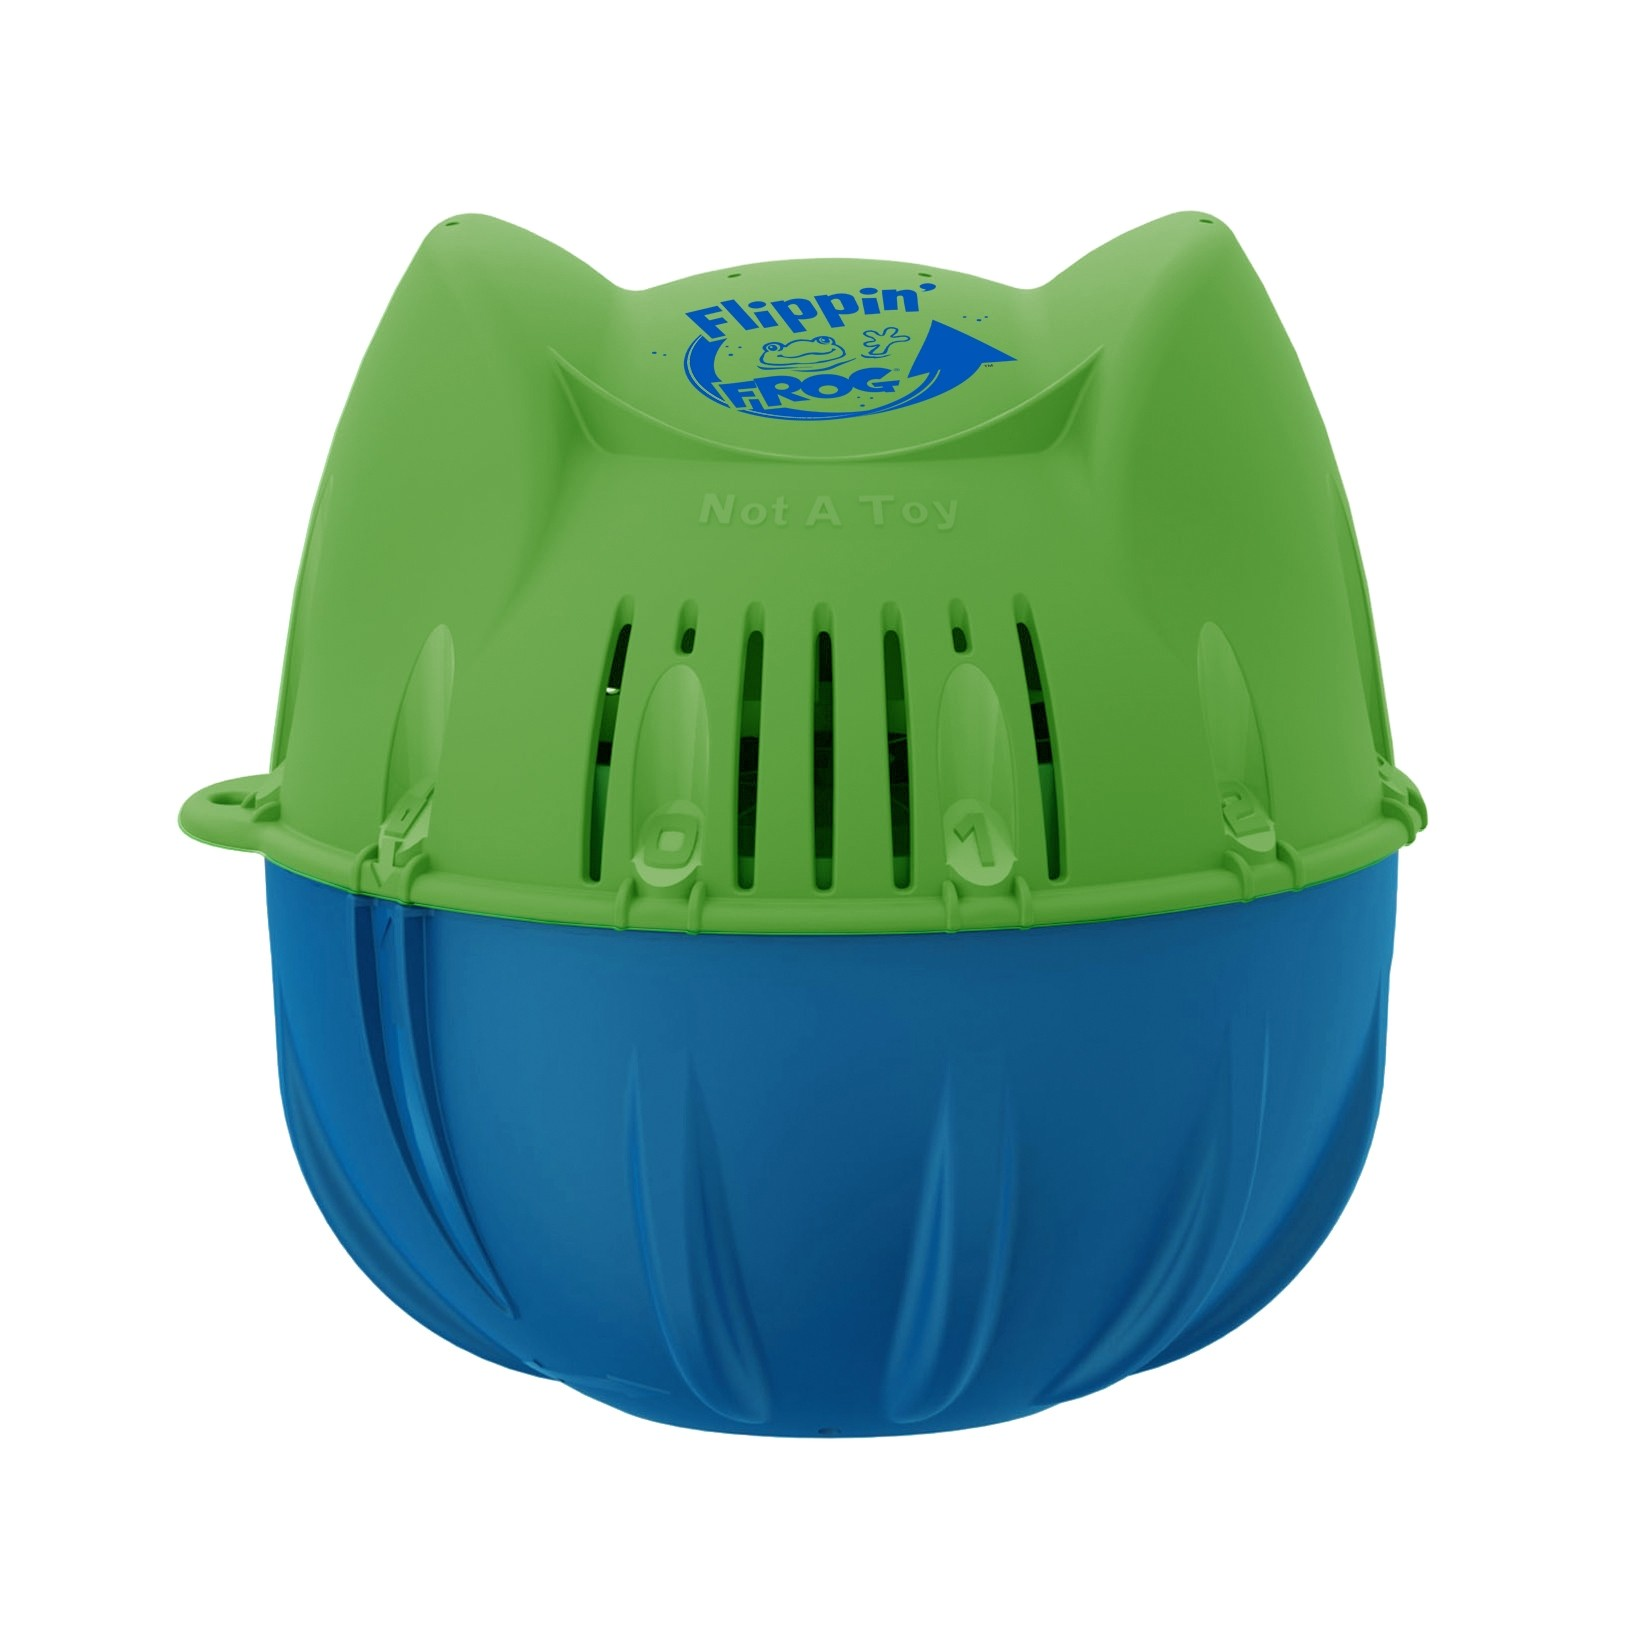 Flippin Frog Chlorine / Mineral Floating Dispenser